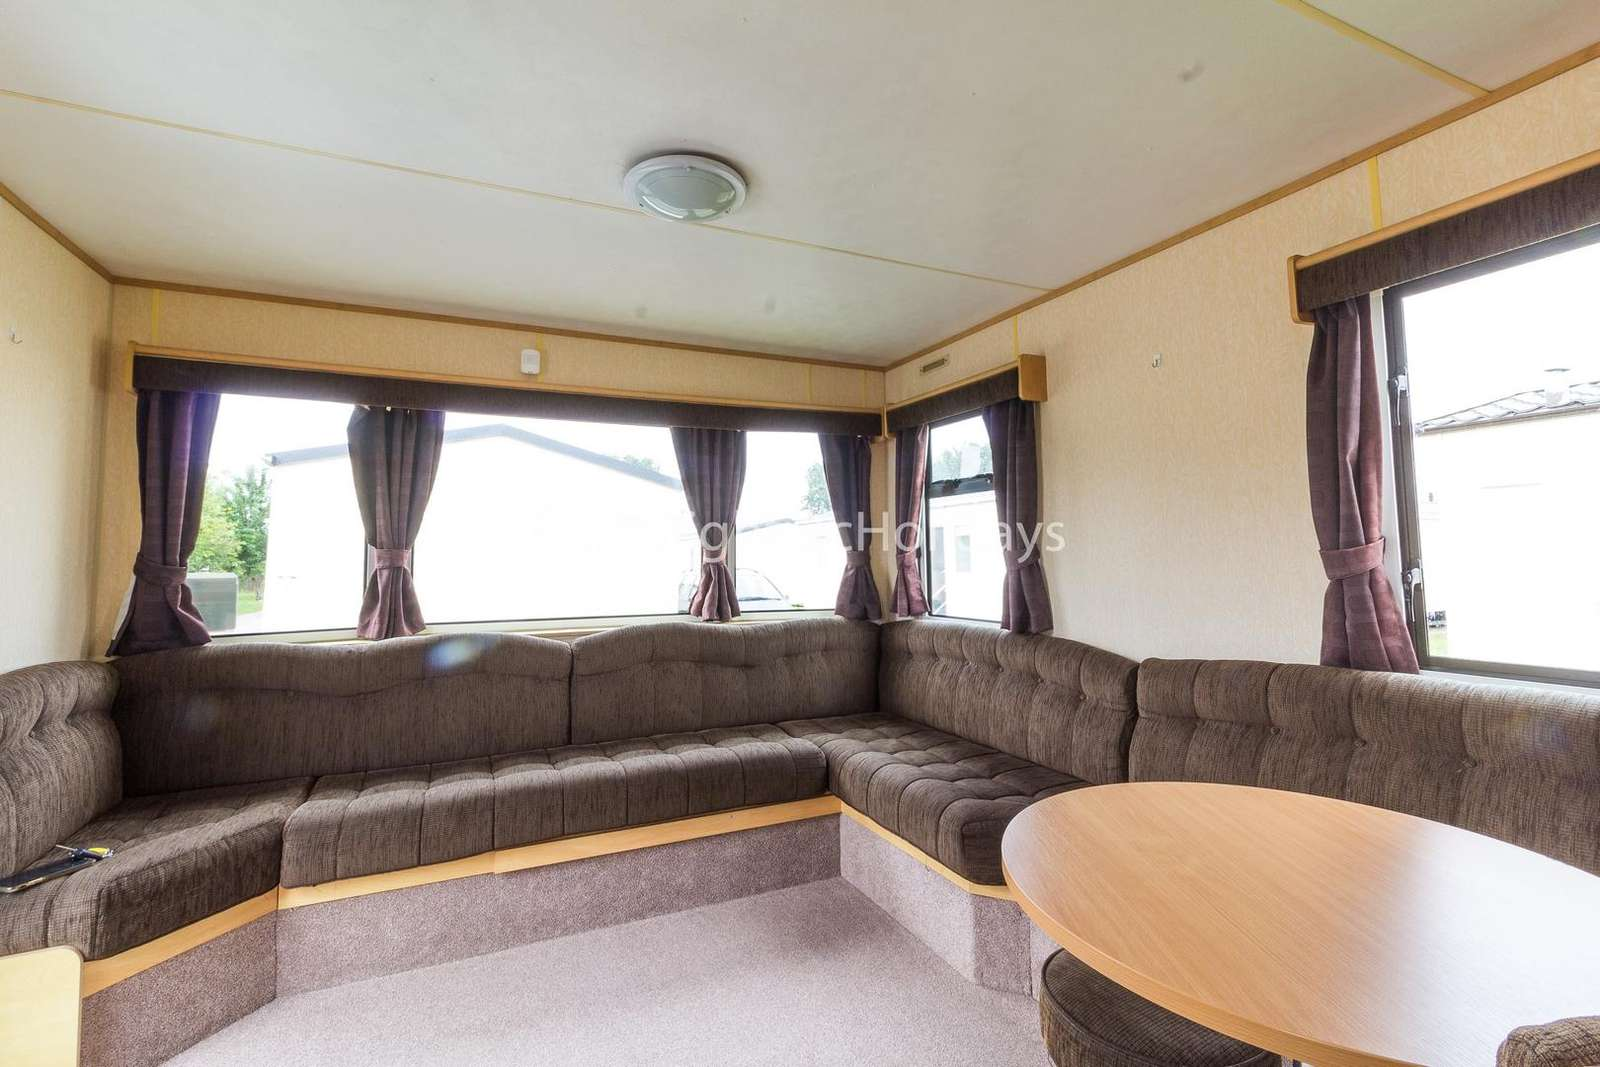 Very spacious lounge area with a TV/DVD player